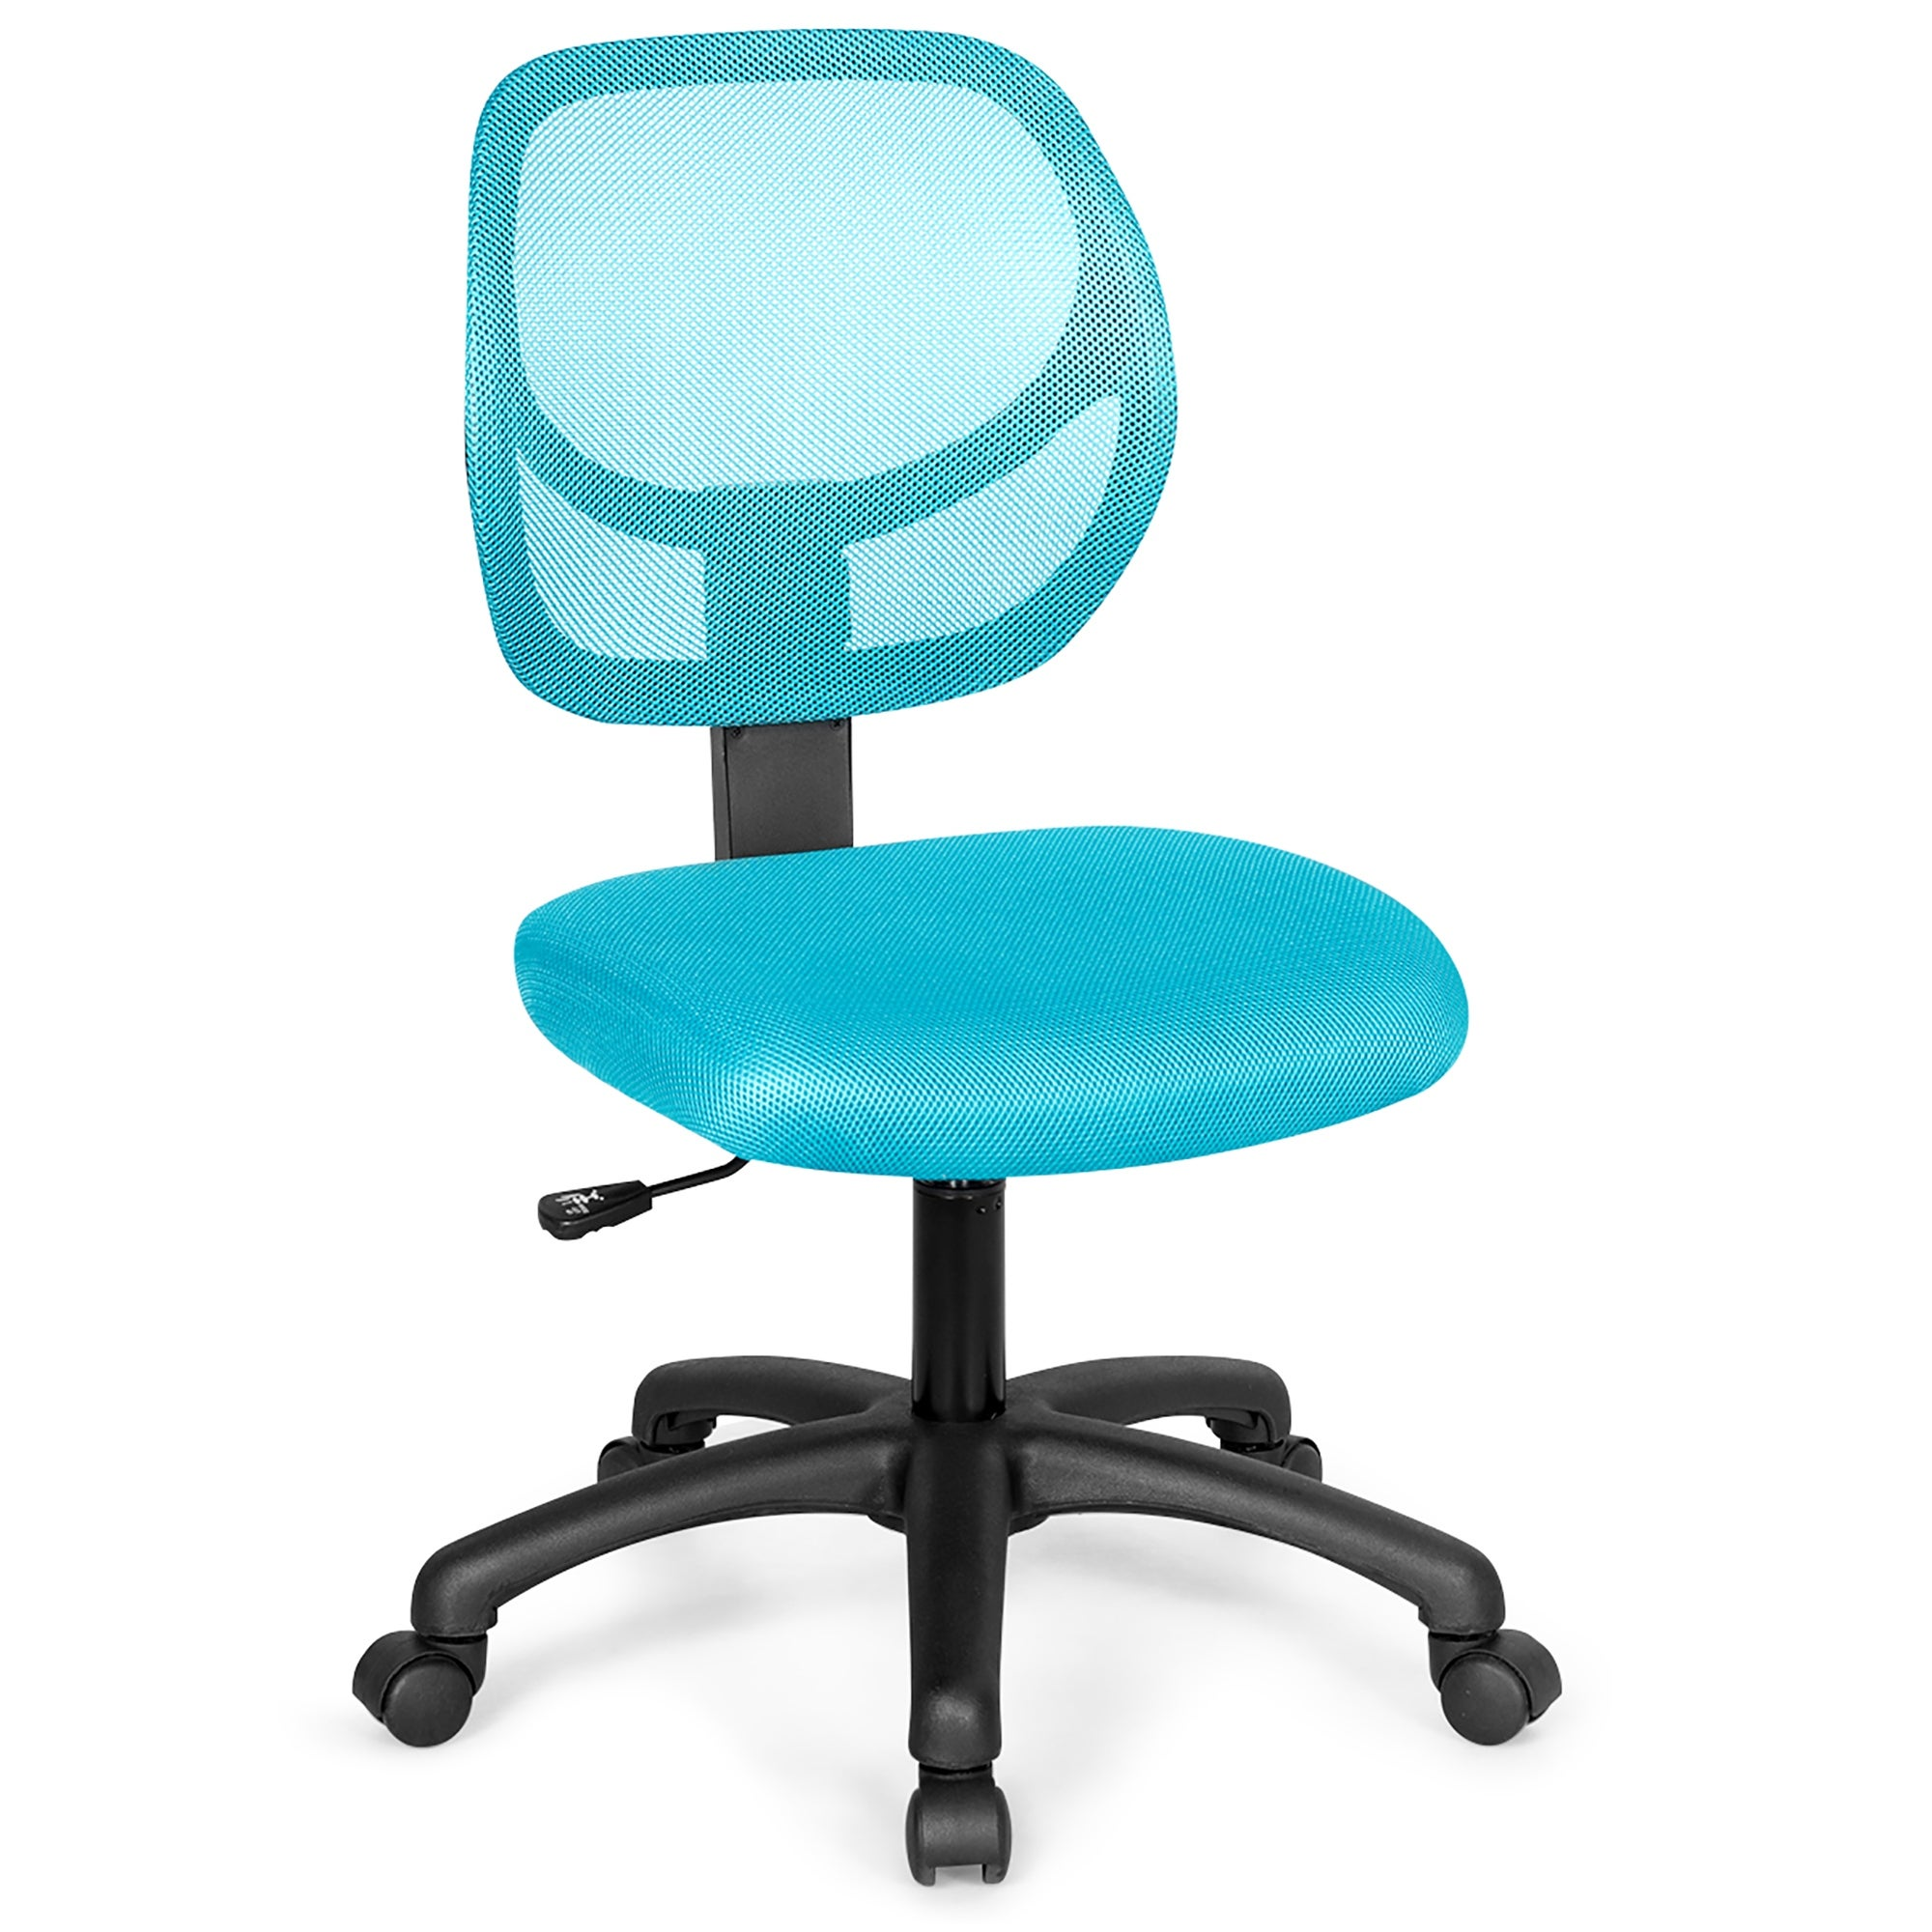 Low-Back Computer Desk Chair Swivel Armless Mesh Task Office Chair